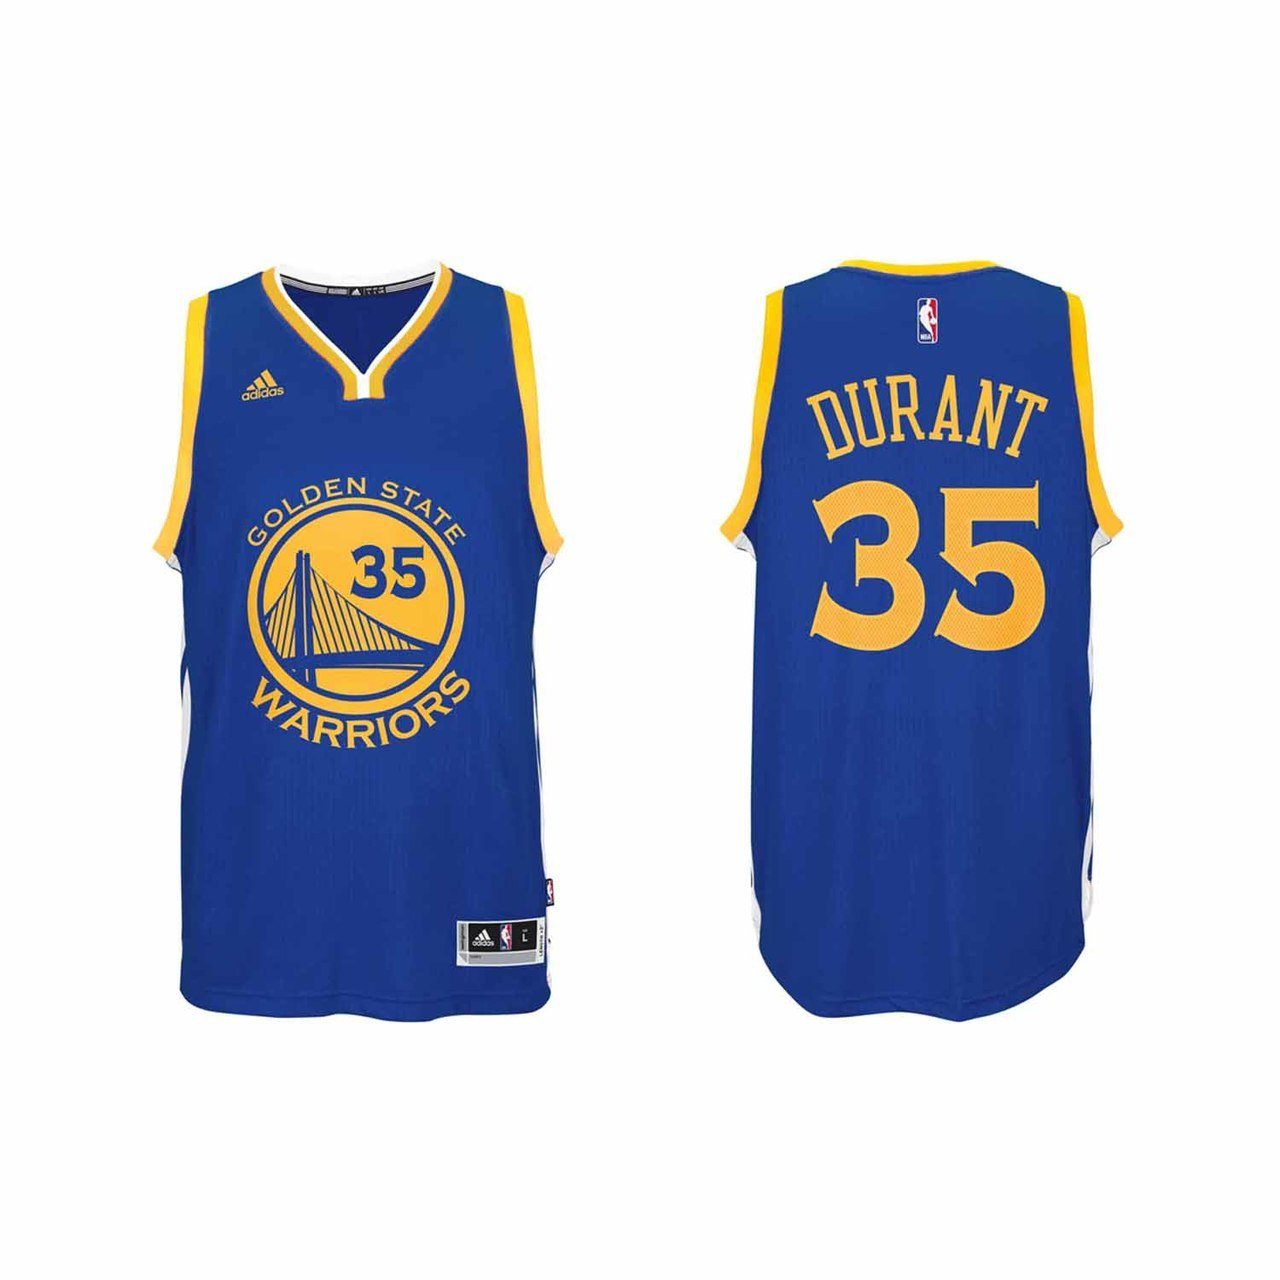 b41d222b Amazon.com : Golden State Warriors Kevin Durant Adult Swingman Jersey -  Royal #35, : Sports & Outdoors